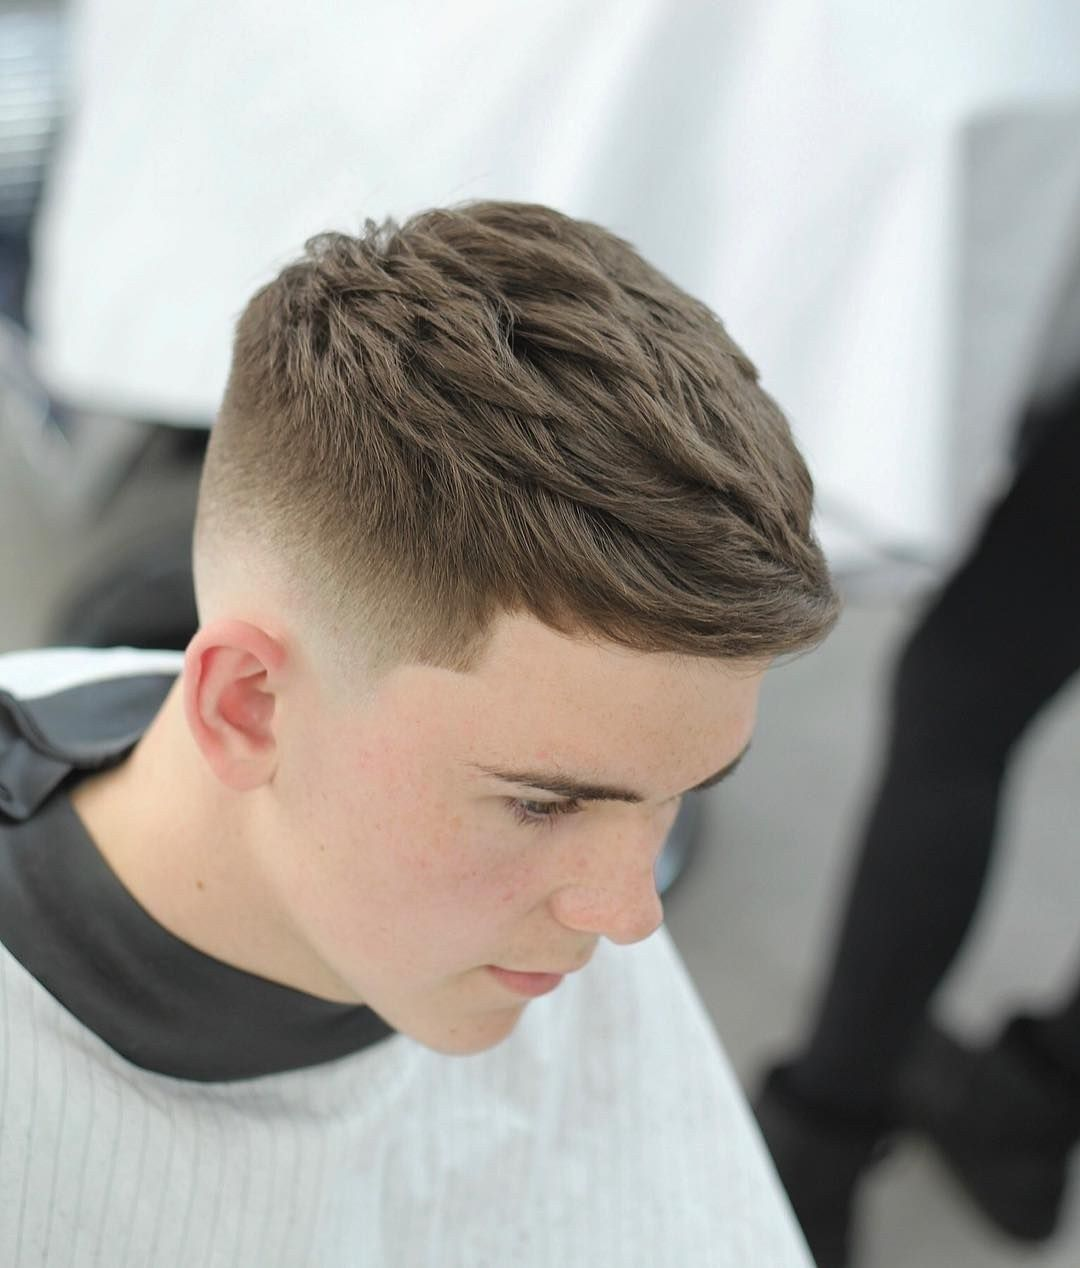 Men 039 S Hairstyle Trends 2020 With Bangs Pin On Doctor In